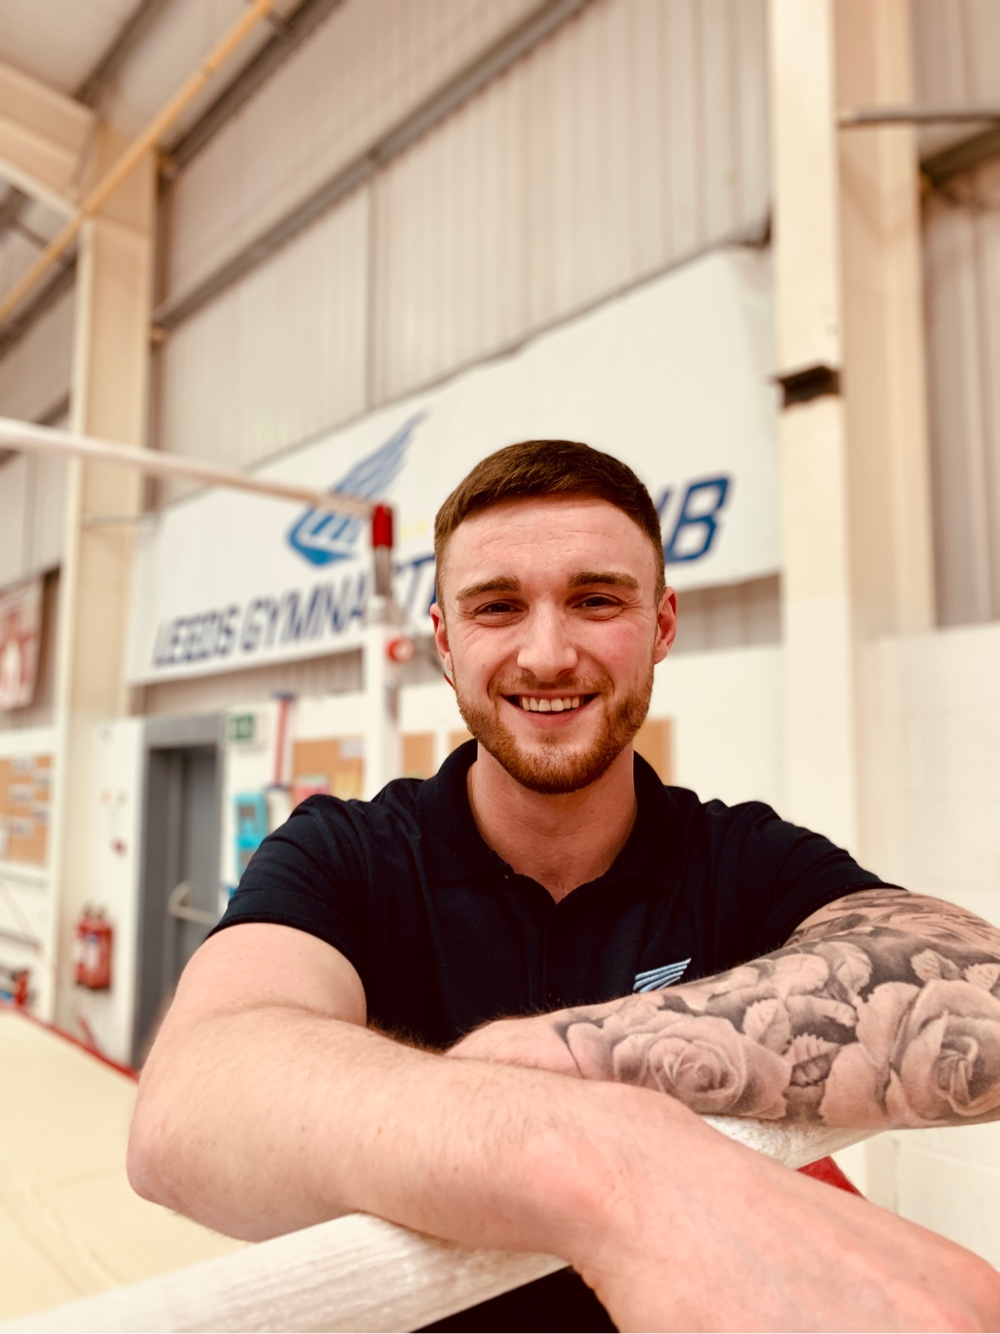 Liam Pearson Leeds Gymnastics Coach and Personal Trainer